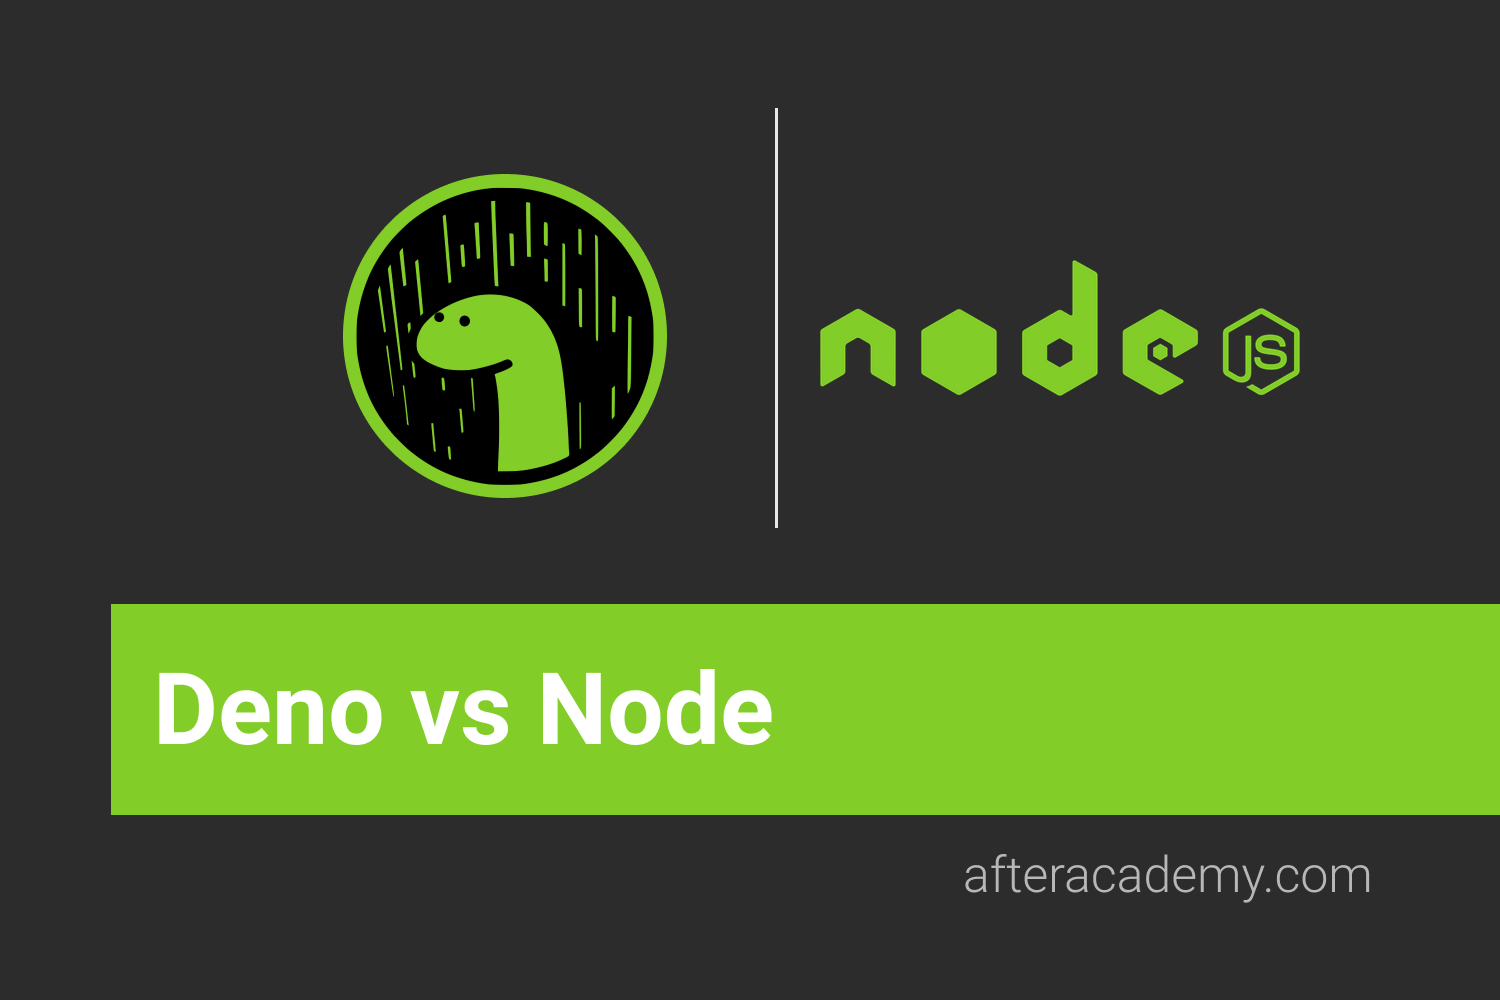 Deno vs Node